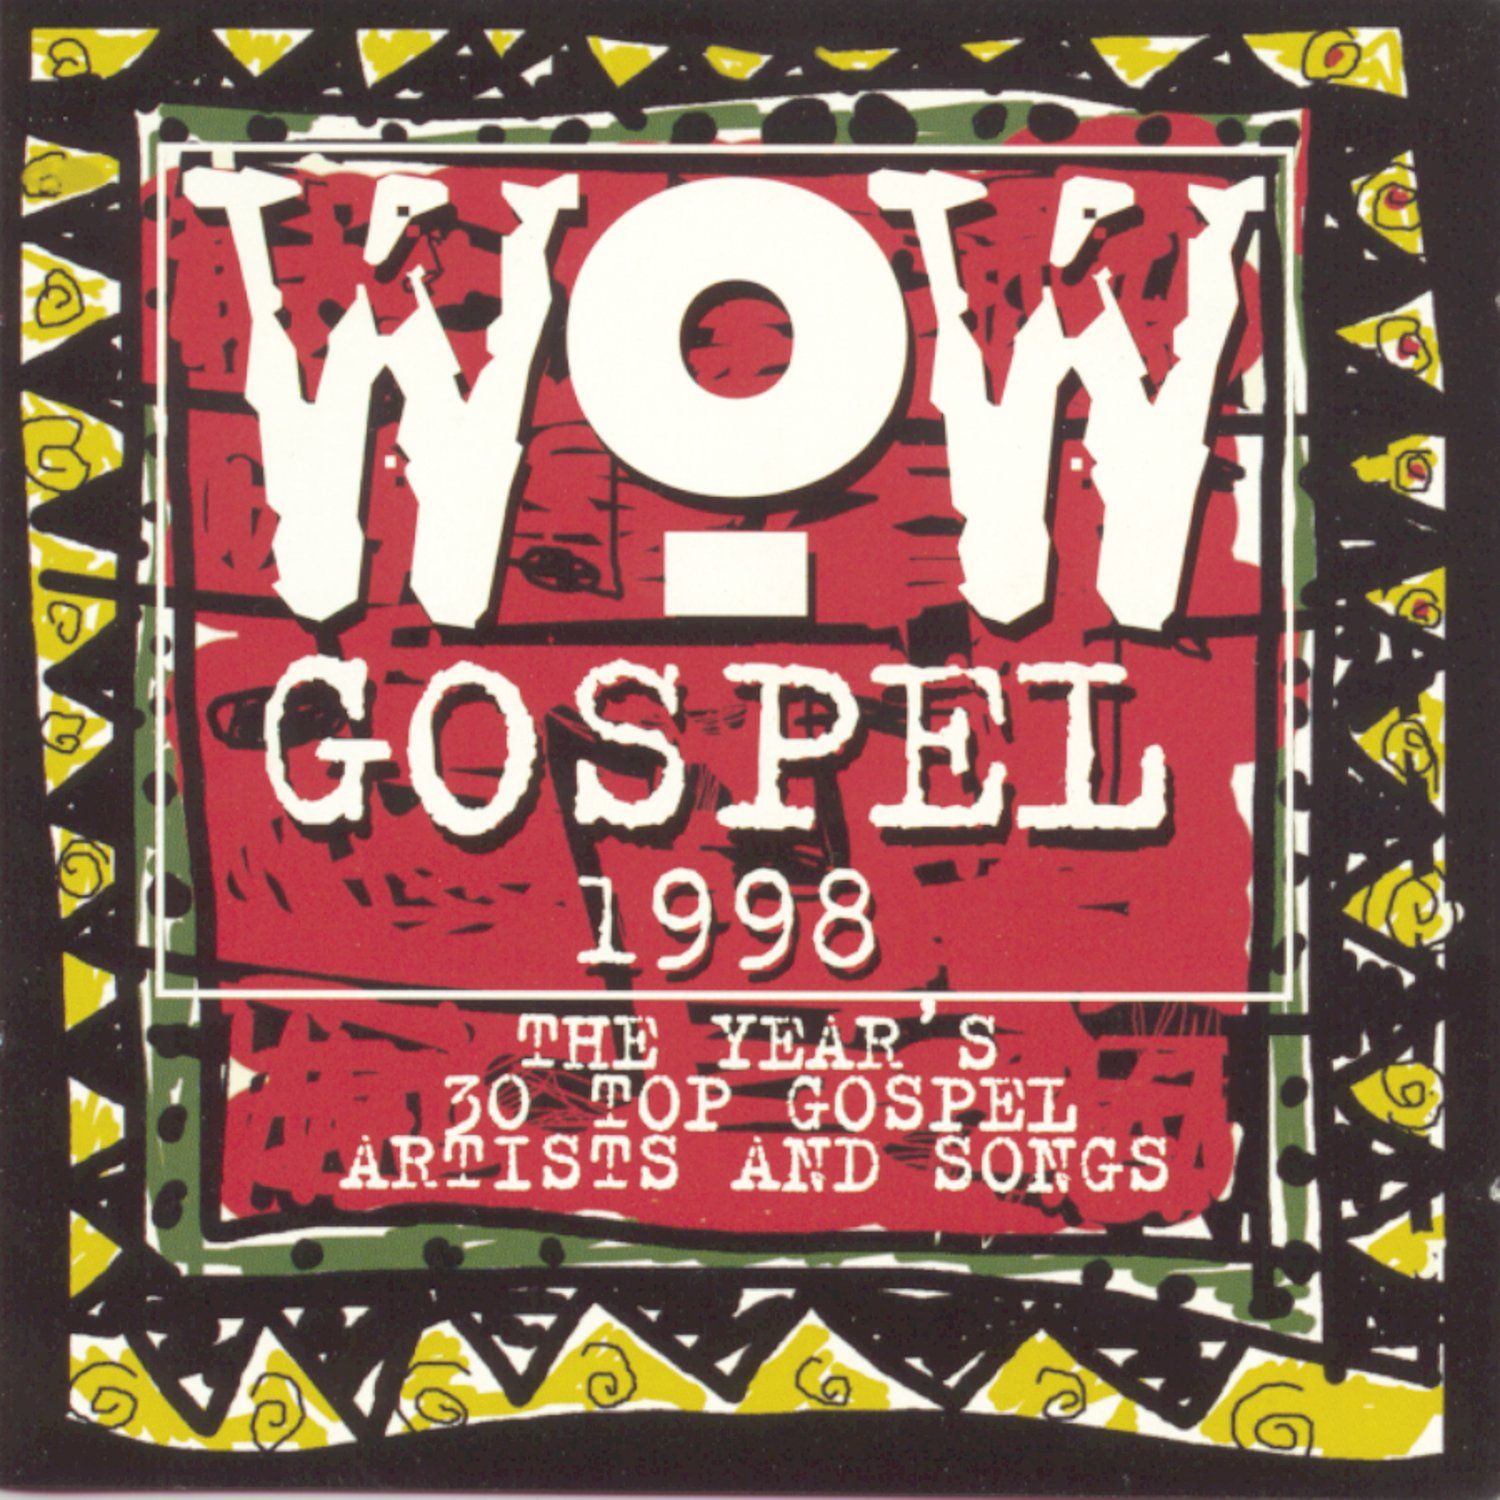 Wow Gospel 1998: The Year's 30 Top Gospel Artists And Songs by Provident Distribution Group